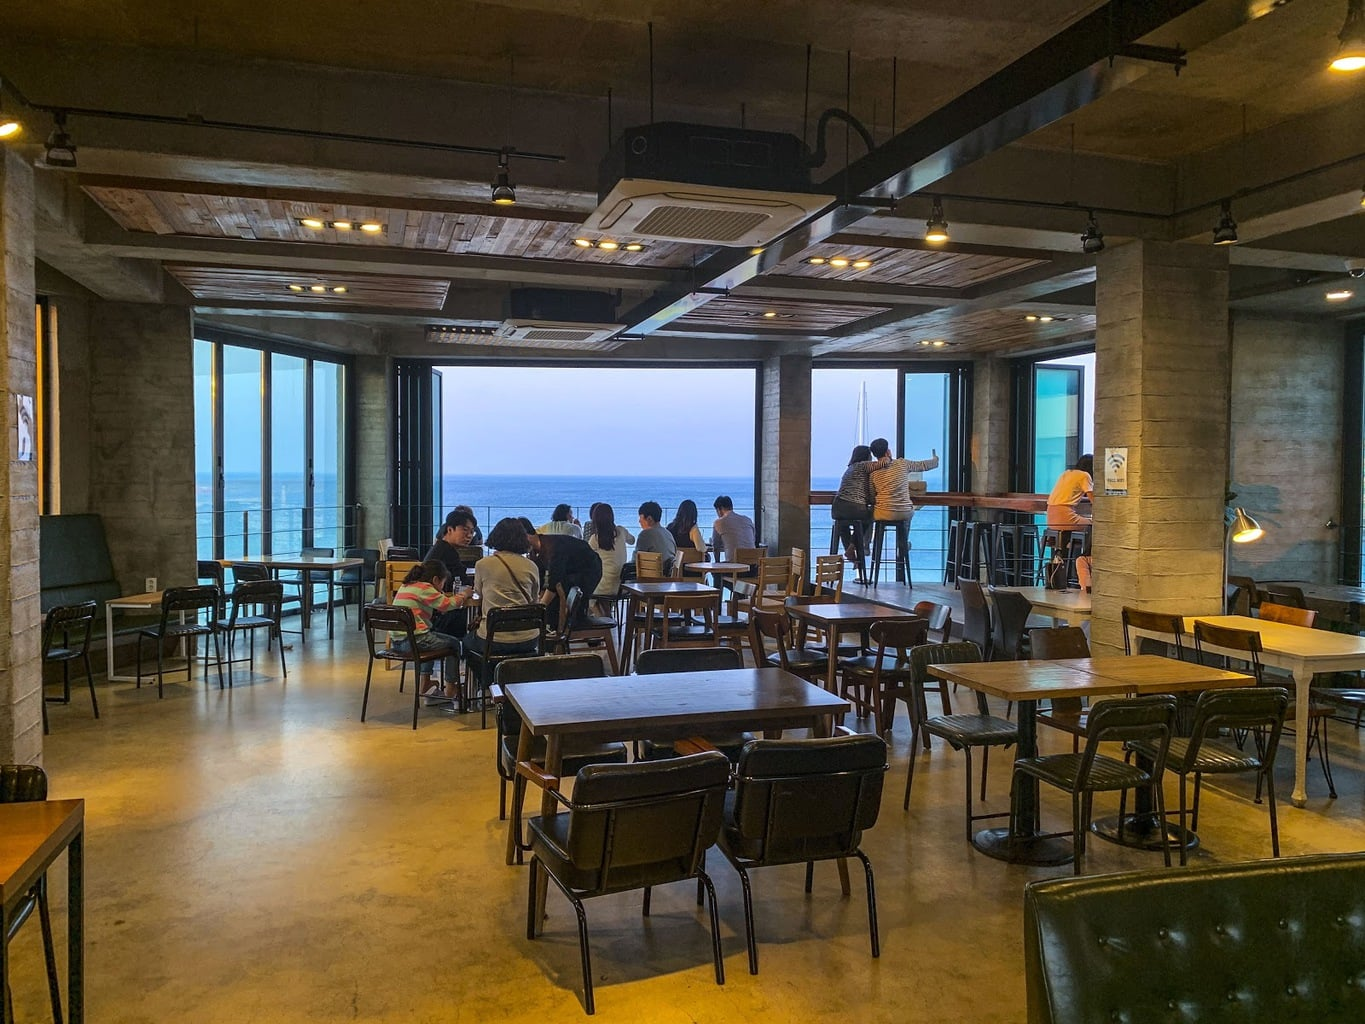 Coffee shops with ocean views, one of my personal favorite South Korean festivals